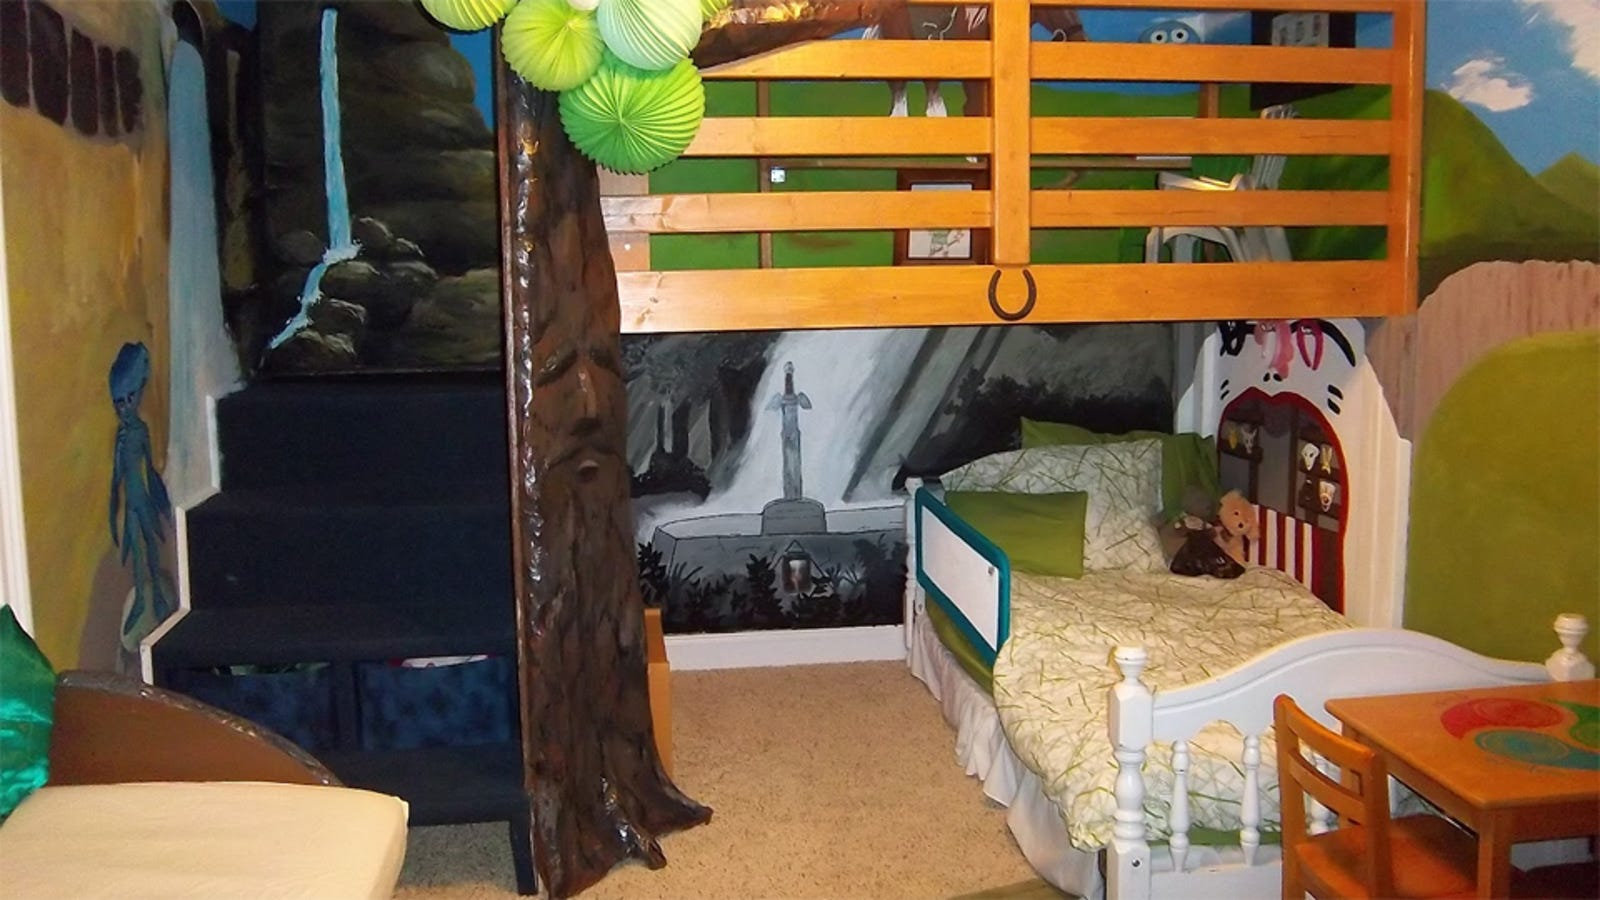 This Kid Gets To Sleep Inside A Video Game Every Night